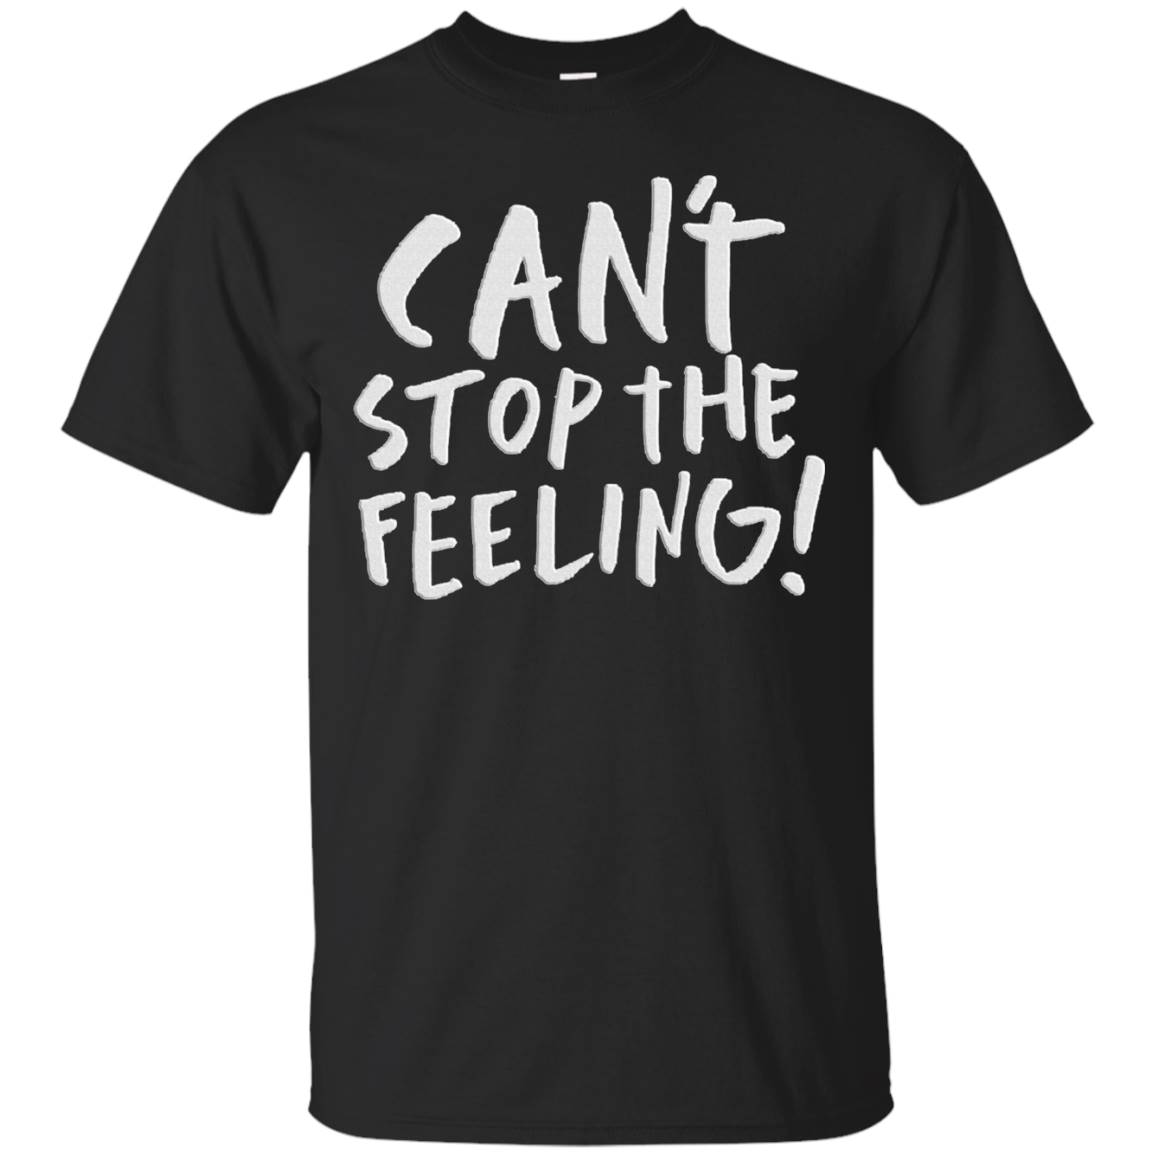 Can't stop the feeling shirt